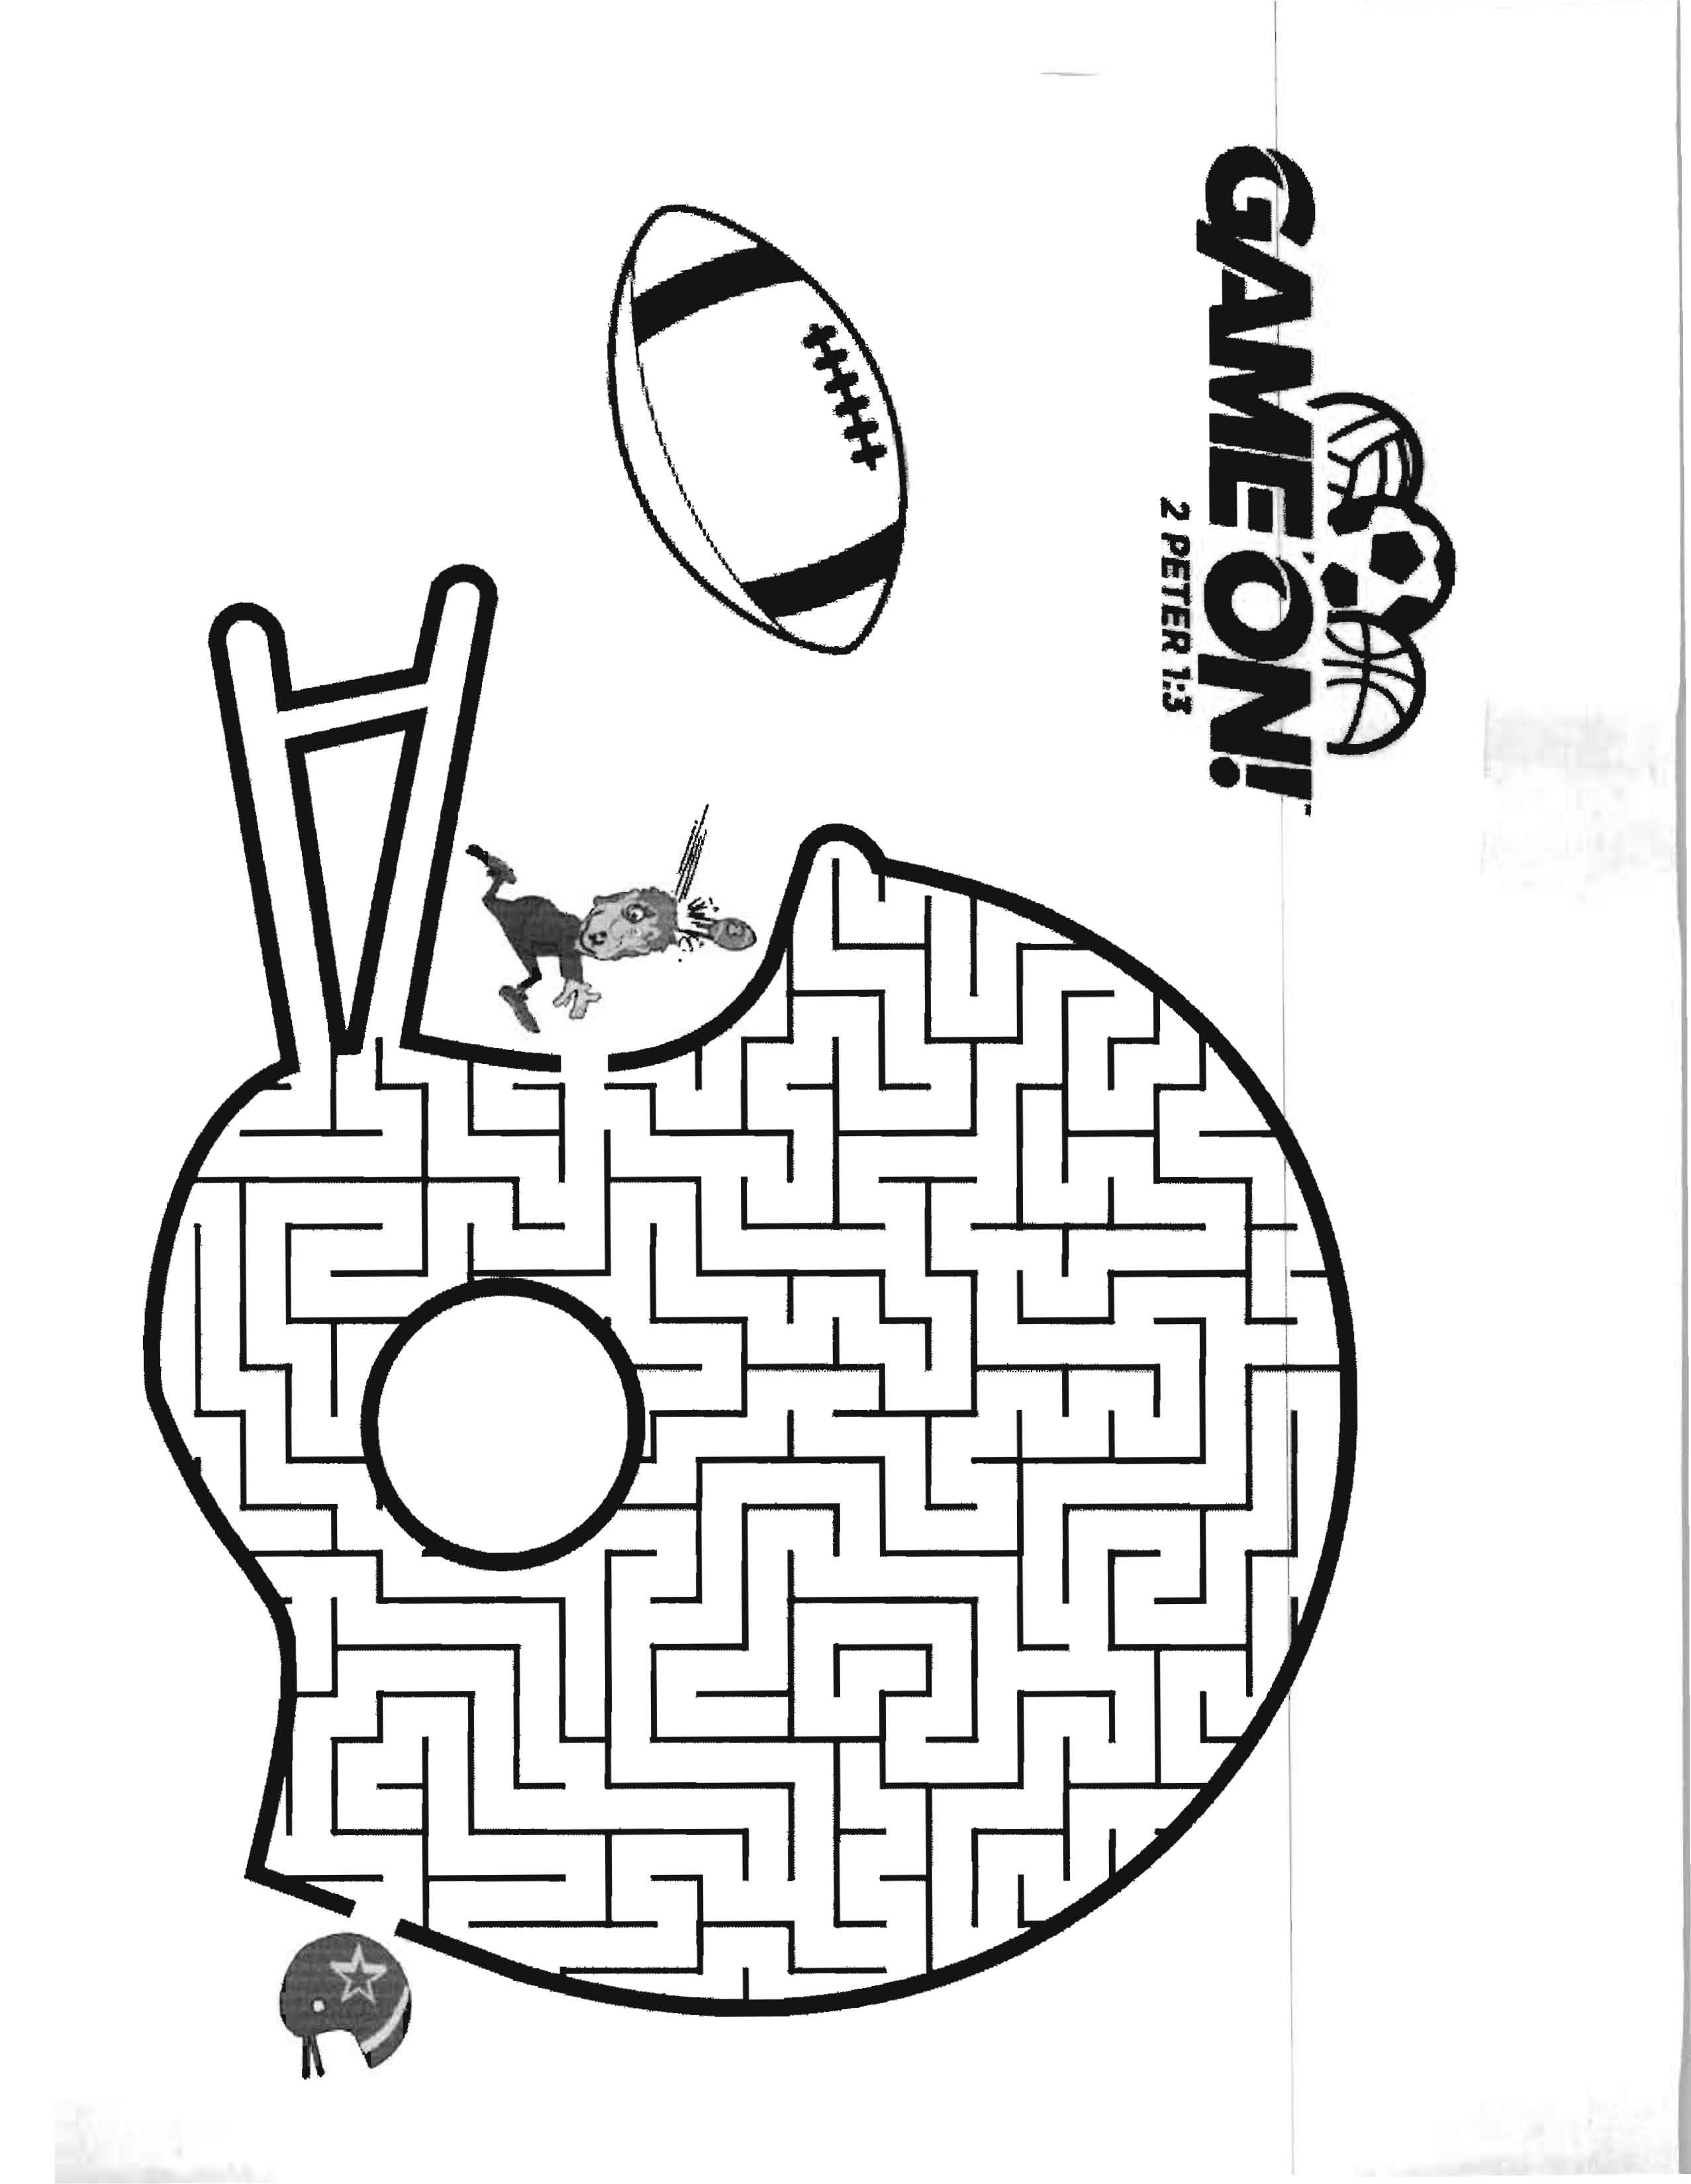 Game On! VBS 2018 Coloring Sheet | Game On VBS 2018 | Pinterest ...